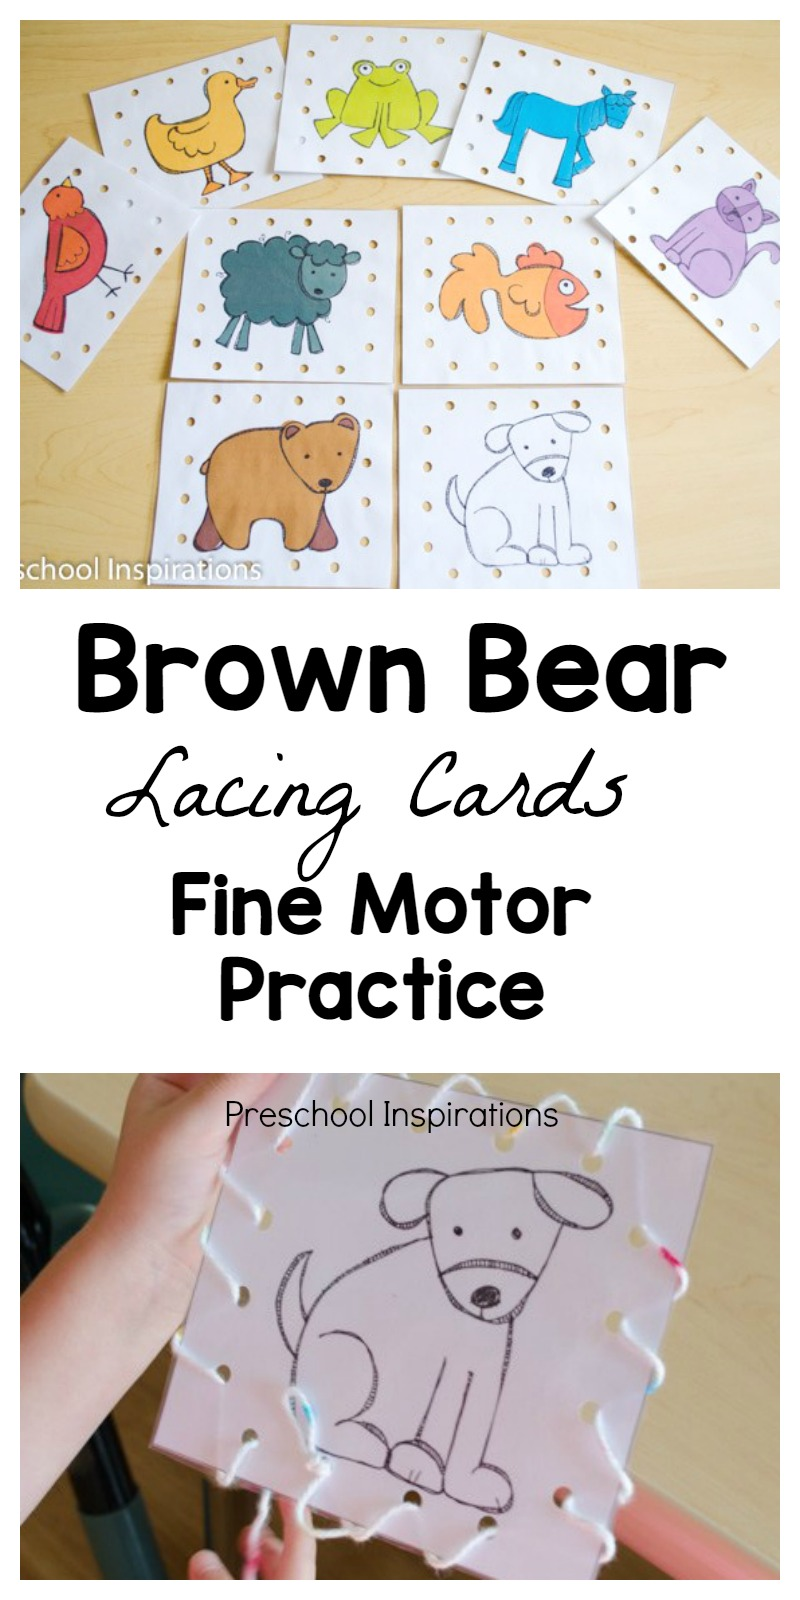 Practice important fine motor skills with these Brown Bear lacing cards. #preschool #prek #finemotor #storyunits #busybags